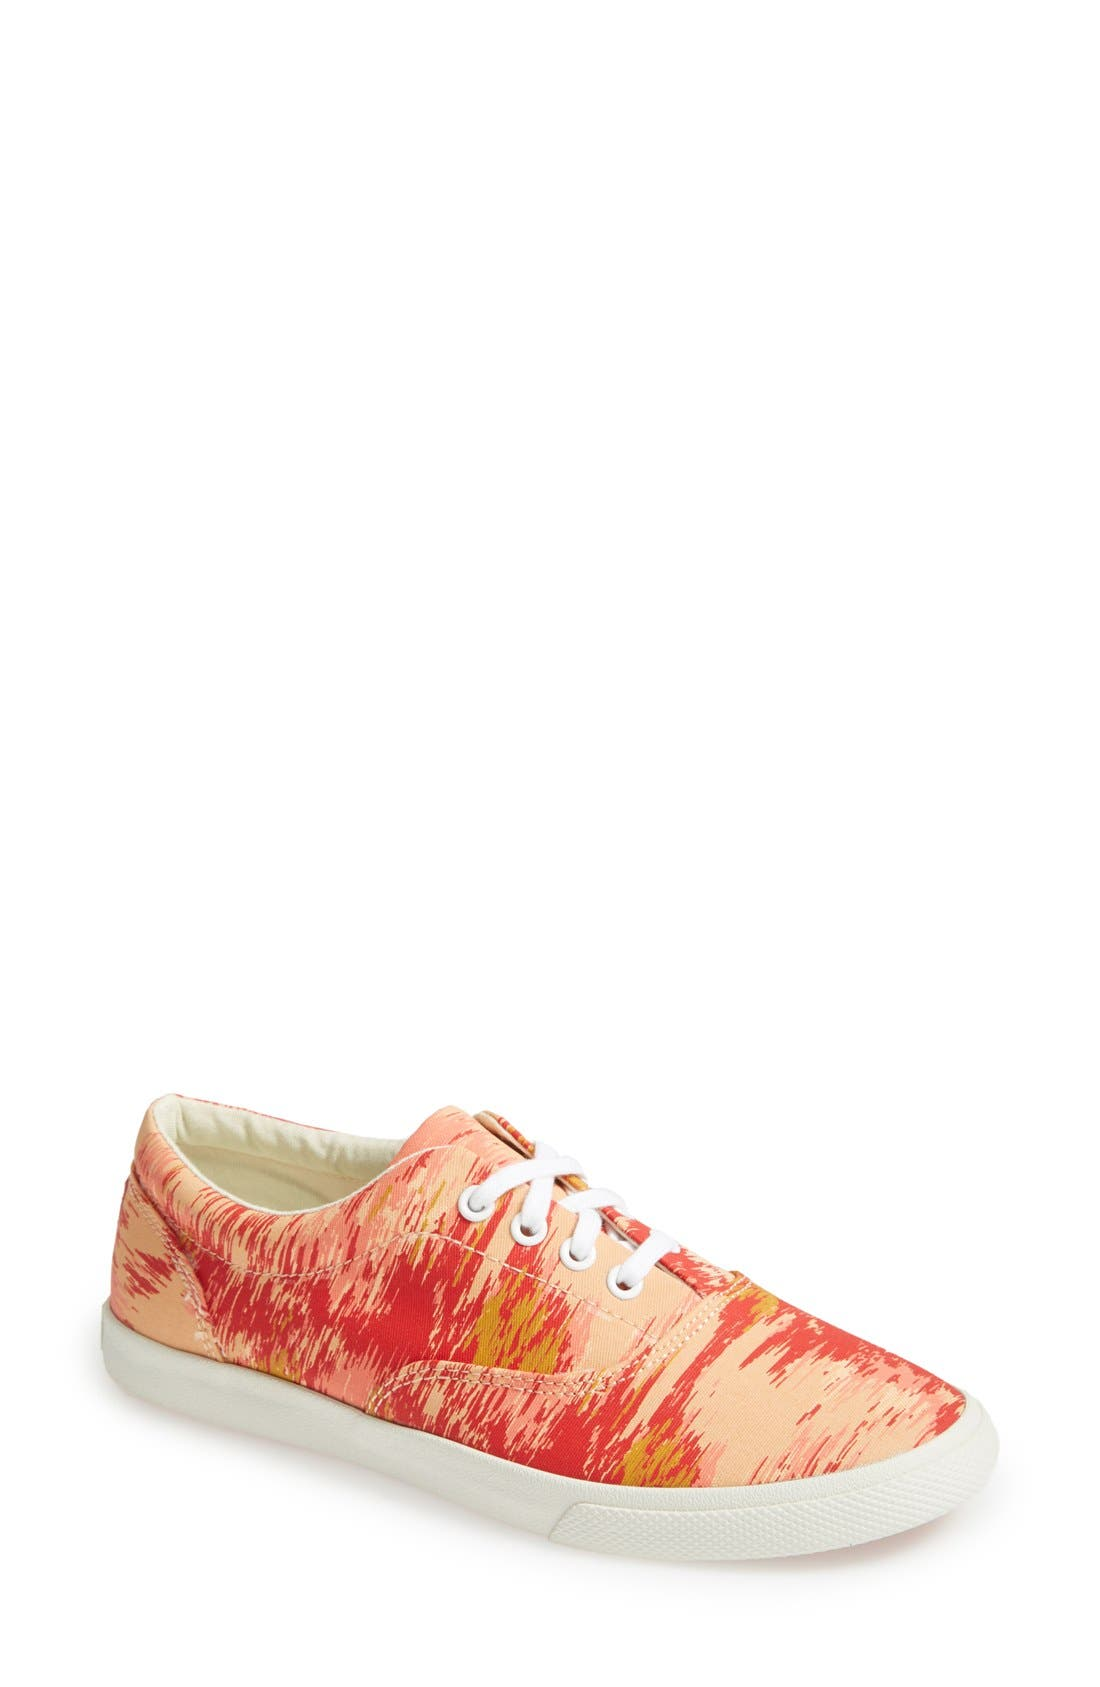 Main Image - BucketFeet 'Dazed Flowers' Sneaker (Women)